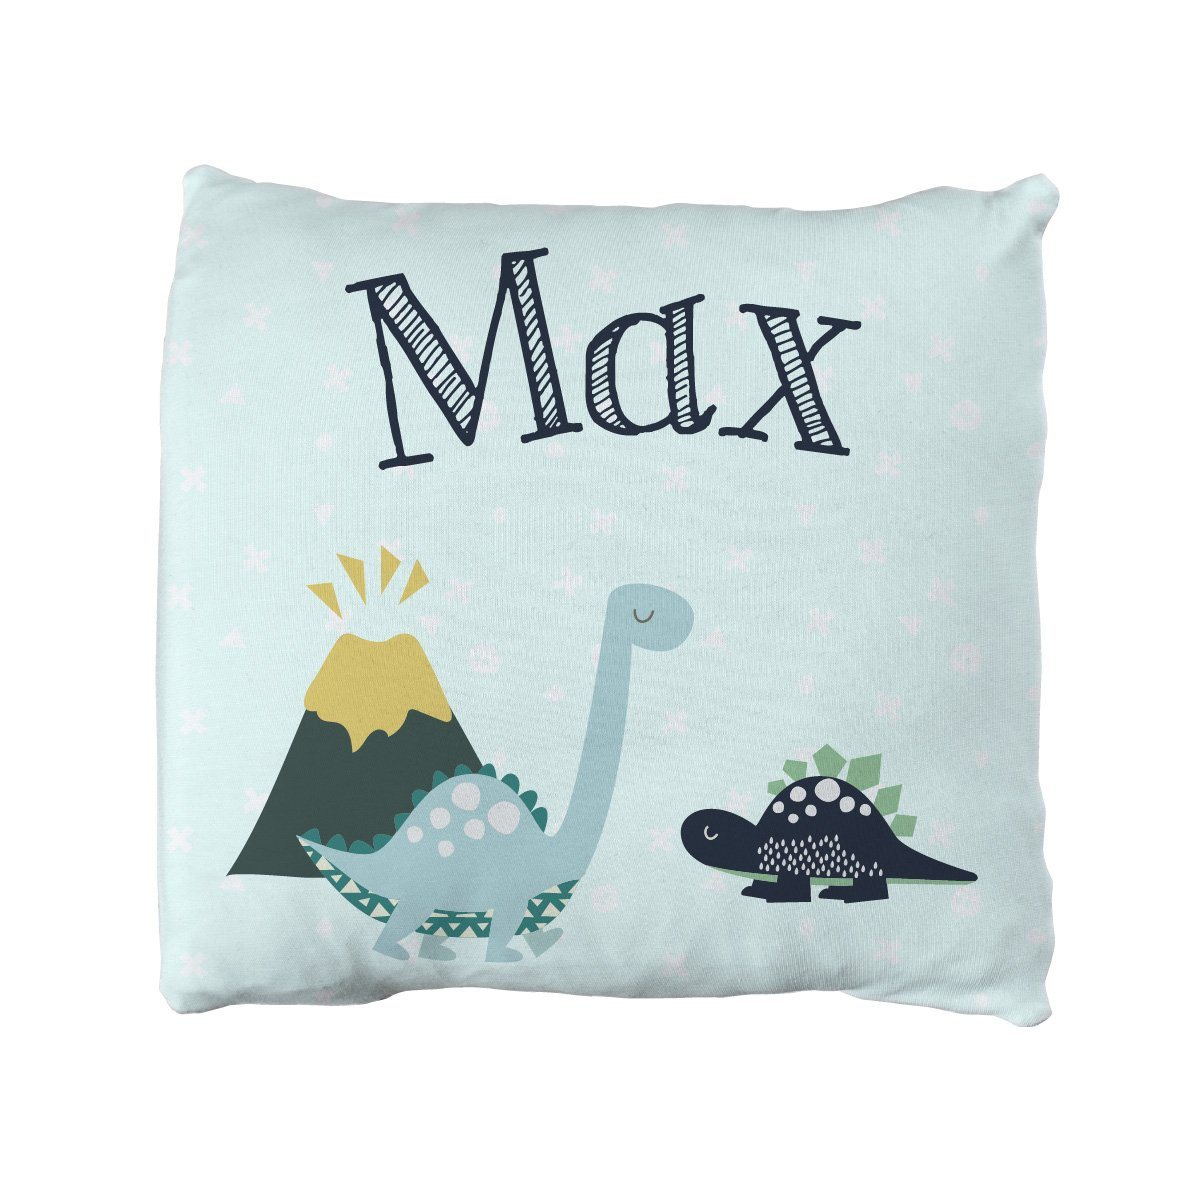 Greg's Dino Adventure | Big Kid Throw Pillow